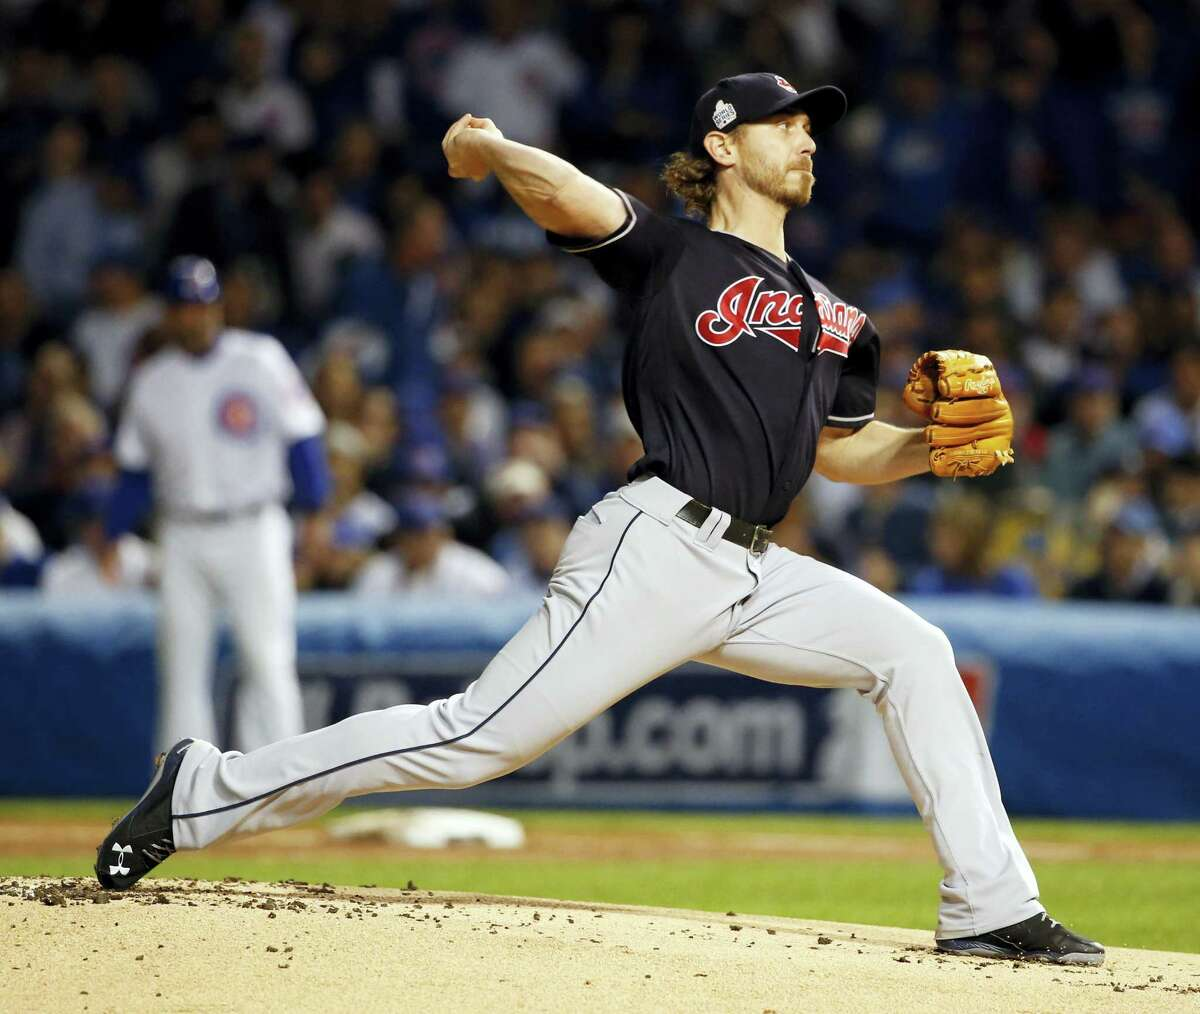 Cleveland Indians starting pitcher Josh Tomlin (43) throws during the first inning of Game 3 of the Major League Baseball World Series against the Chicago Cubs on Oct. 28, 2016 in Chicago.